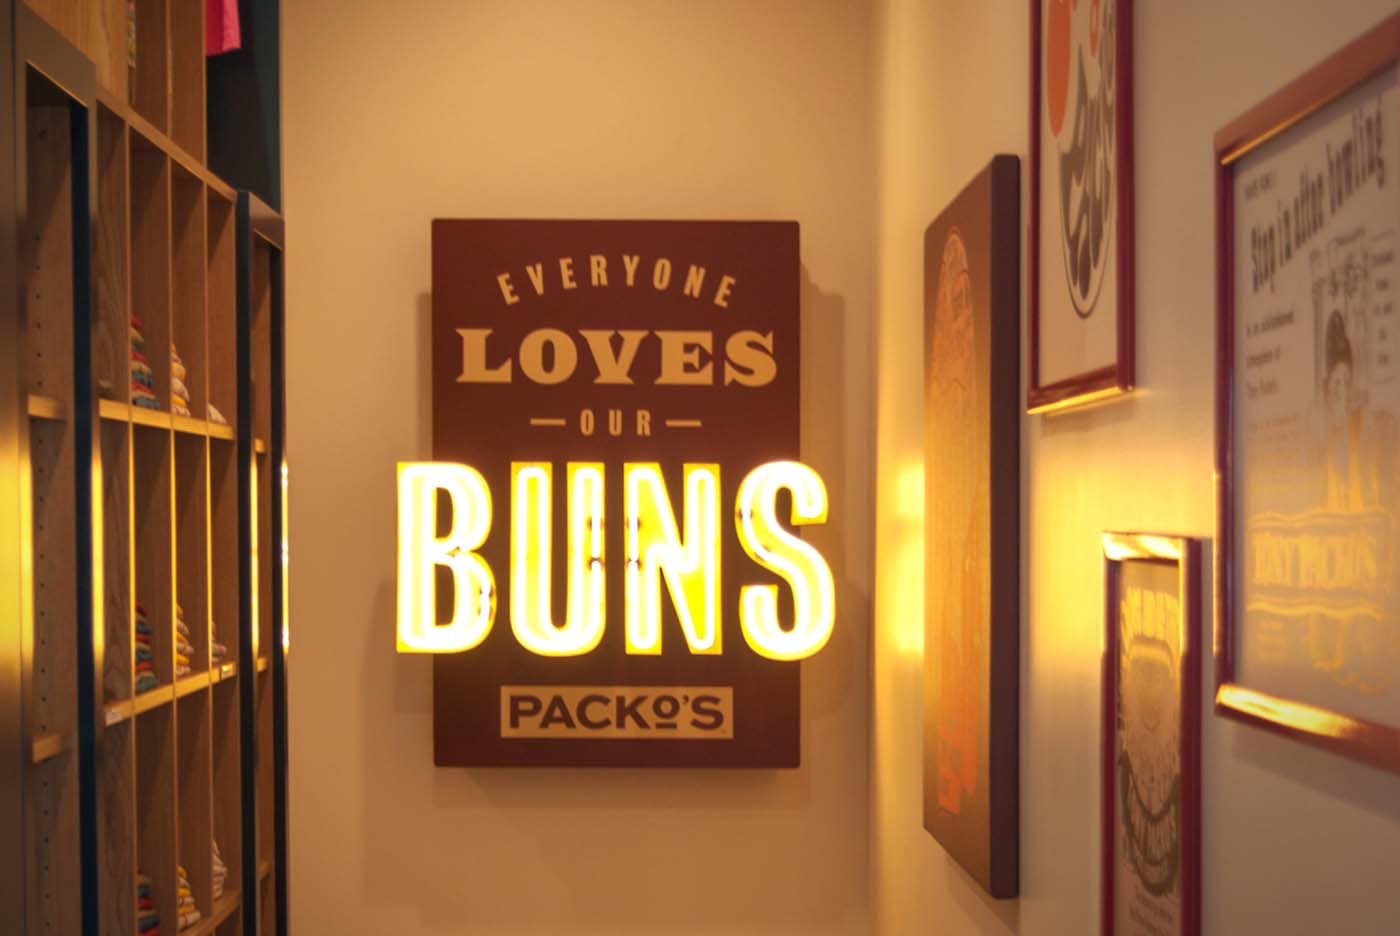 Everyone loves our Buns Sign